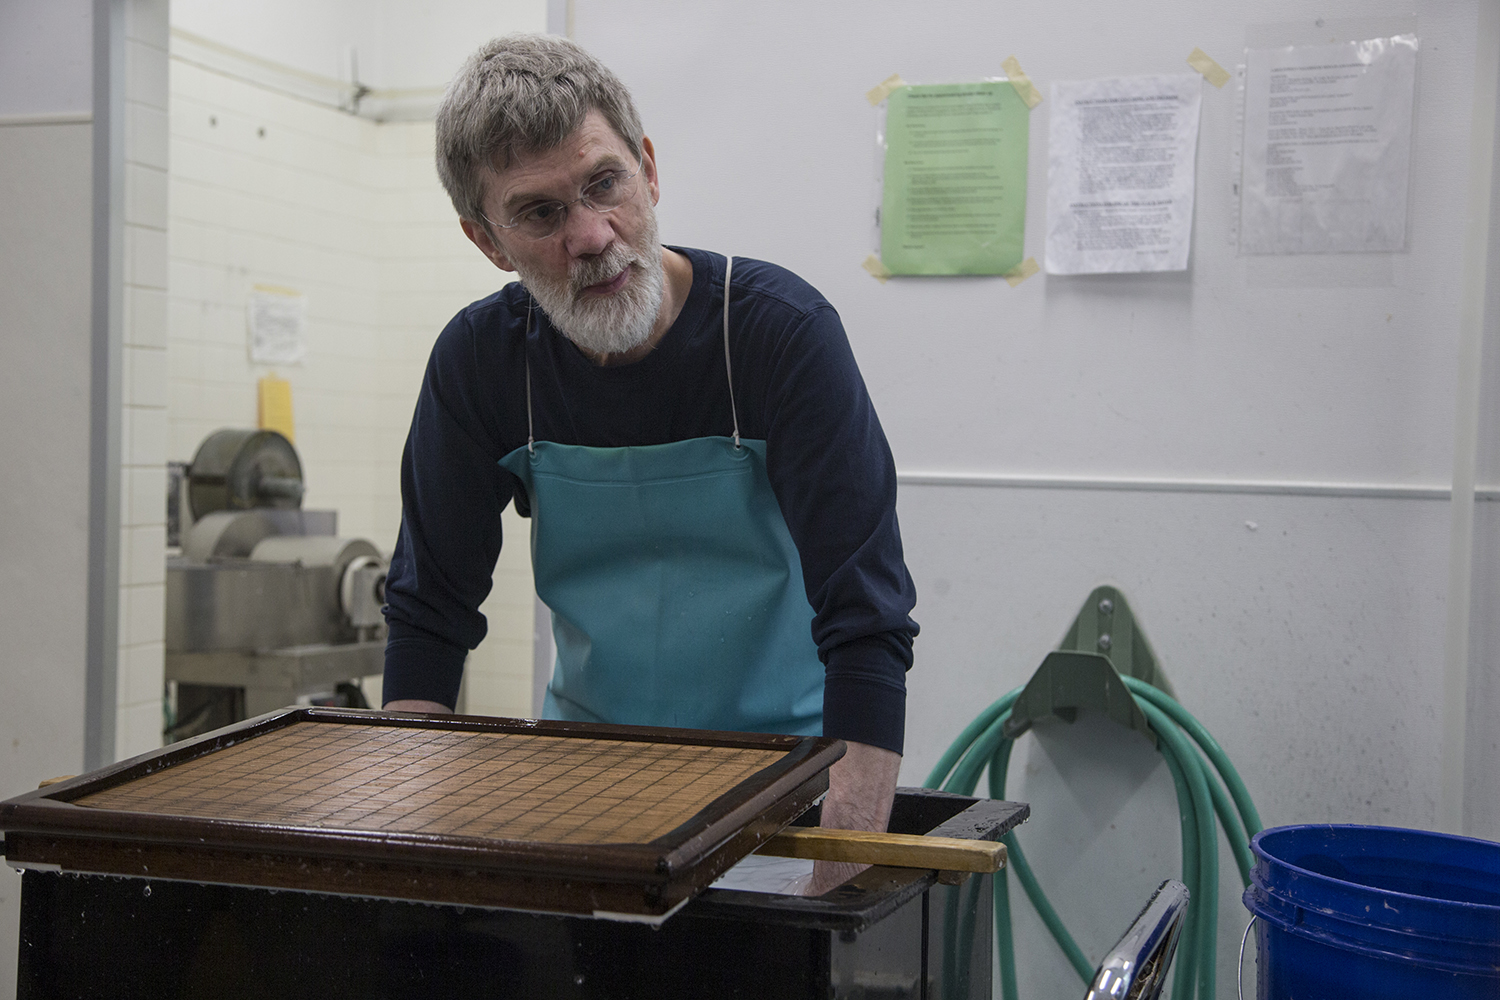 Director of The Center for the Book Timothy Barrett shifts paper pulp during a paper-making demonstration at the Center for the Book in North Hall on June 18, 2019. Graduate students were shown how to shift pulp to create sheets of paper. (Katie Goodale/The Daily Iowan)